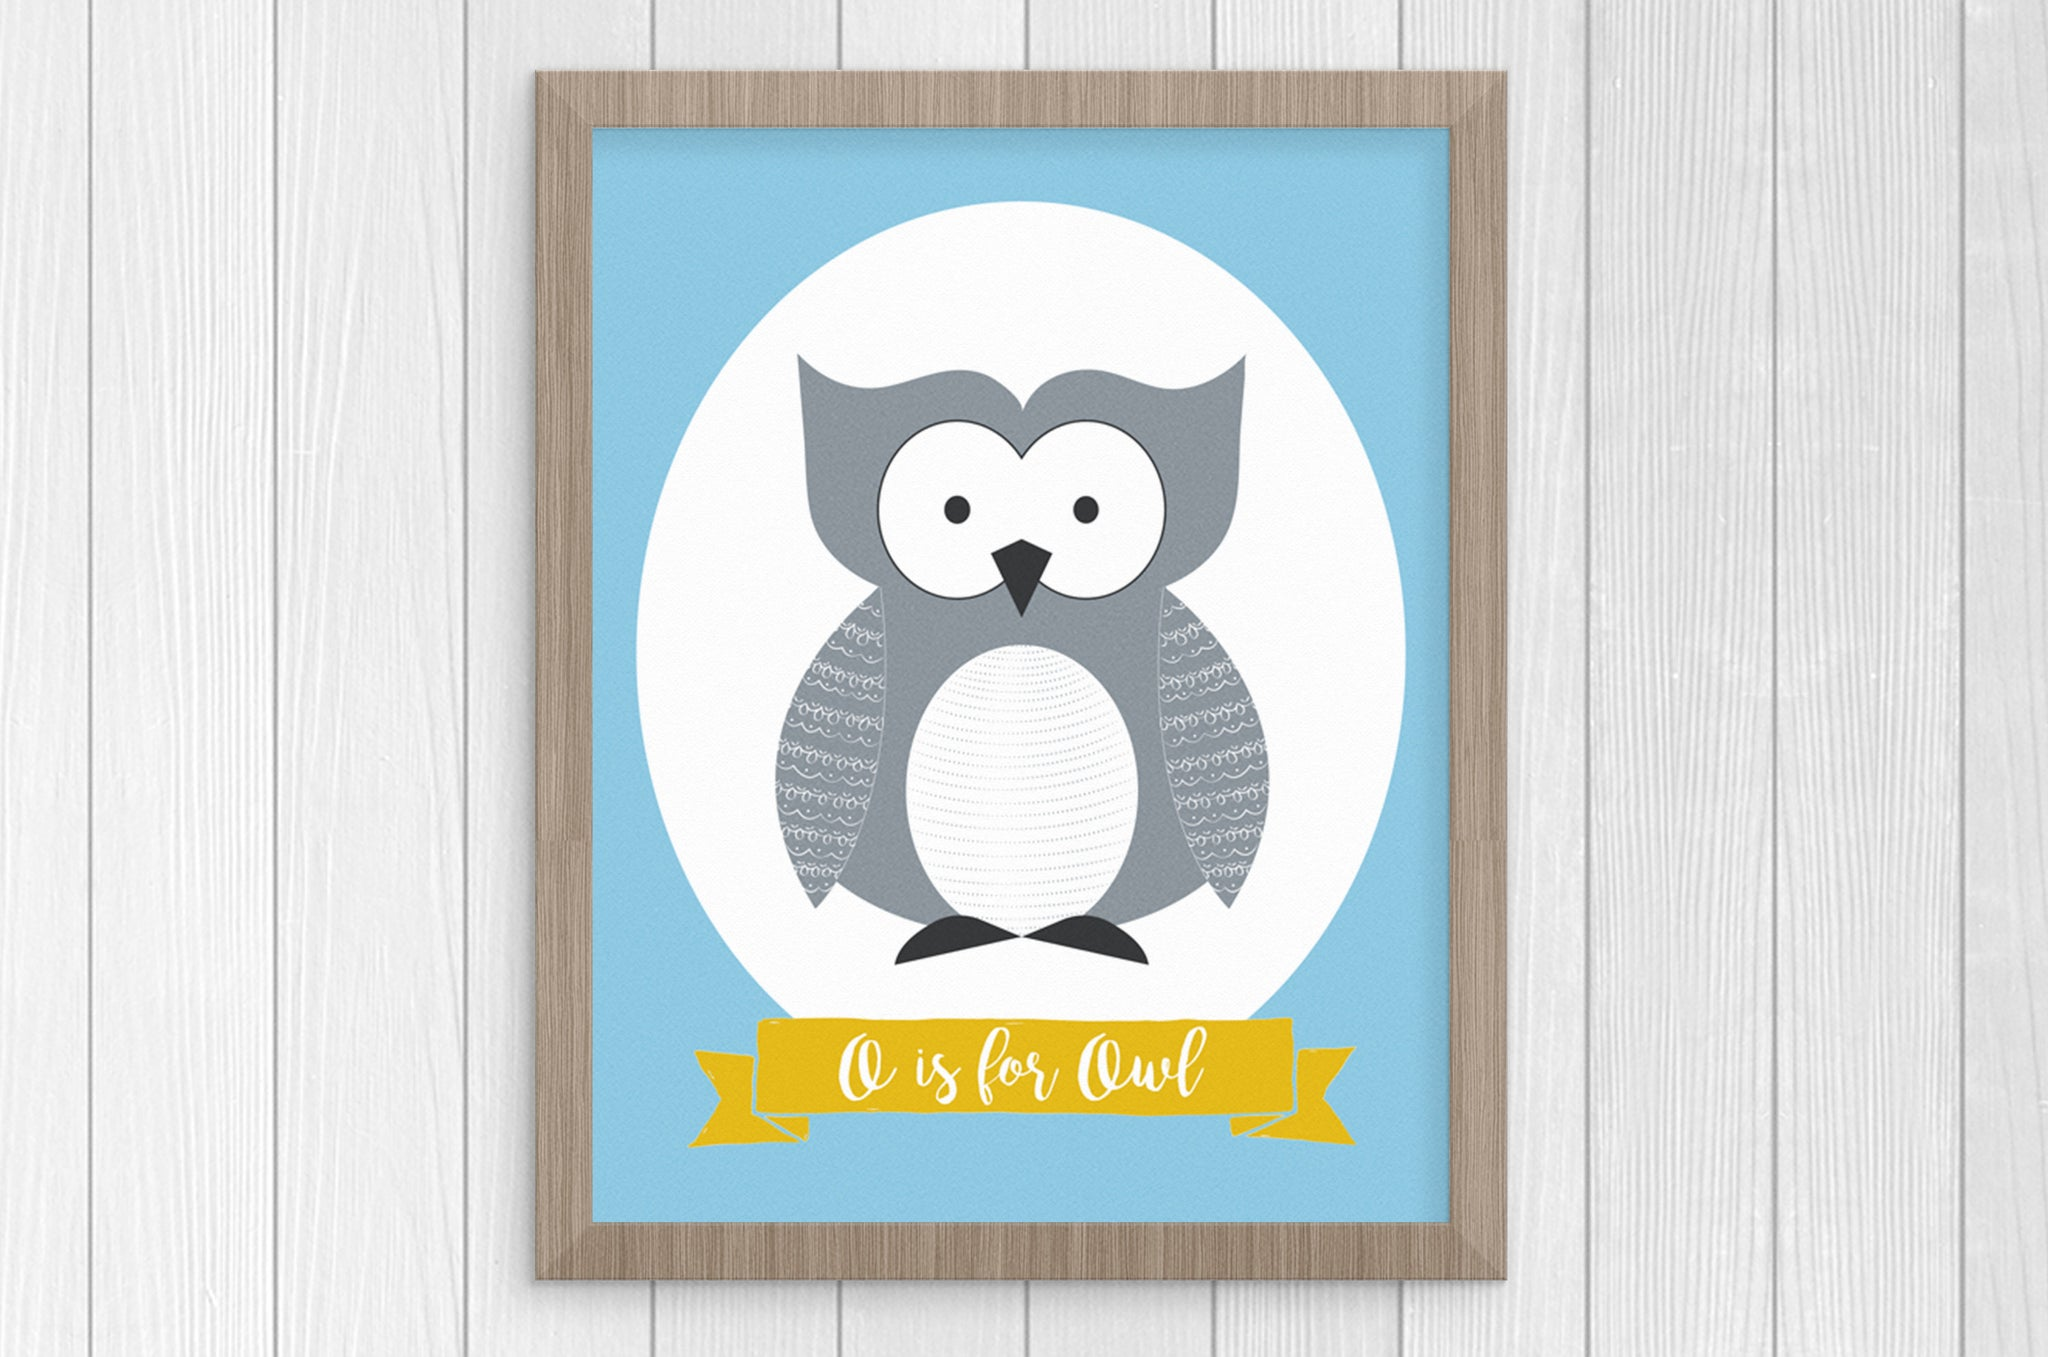 O is for Owl 8 x 10 Print